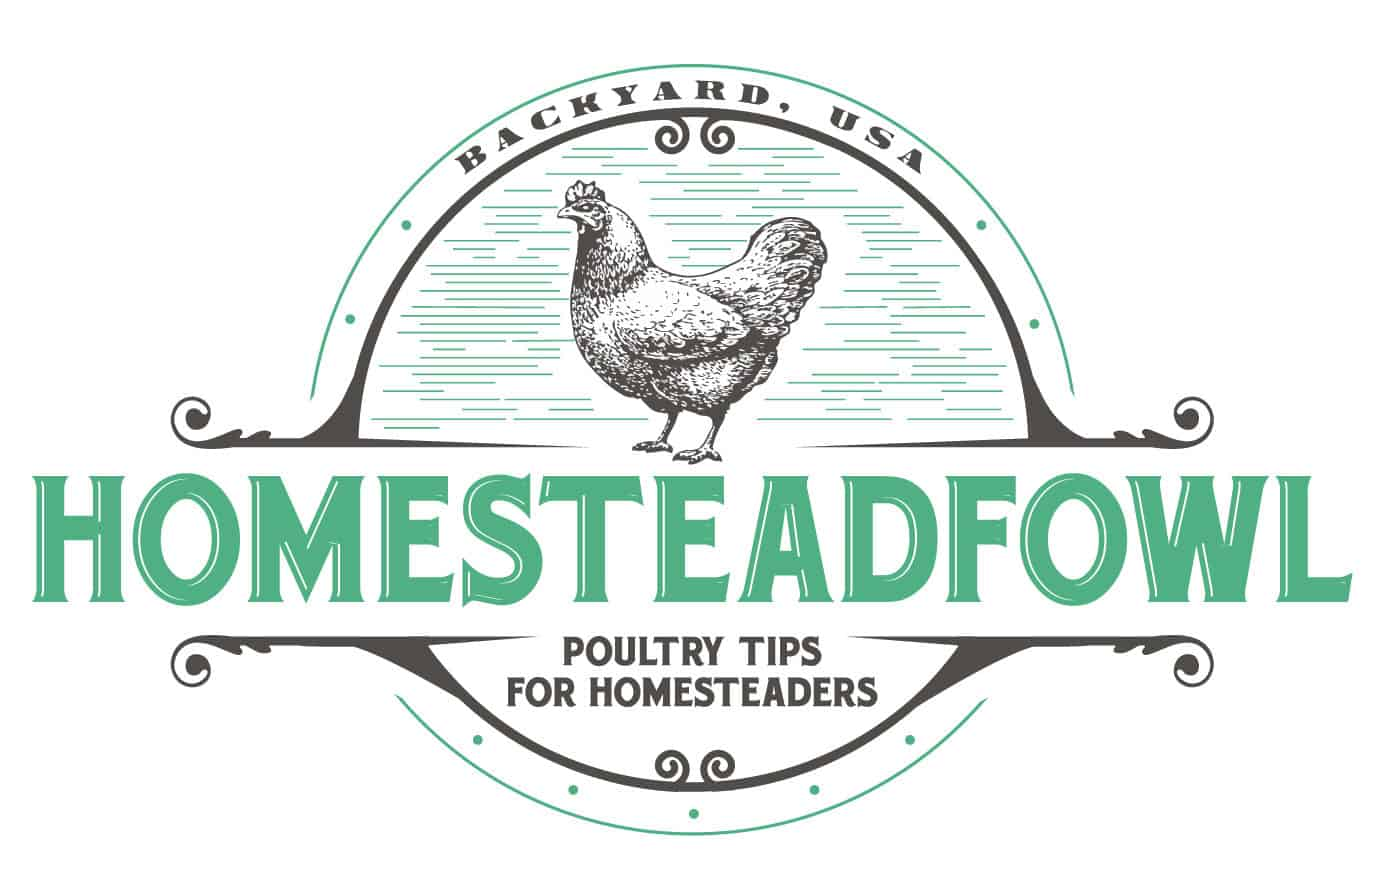 Homestead Fowl